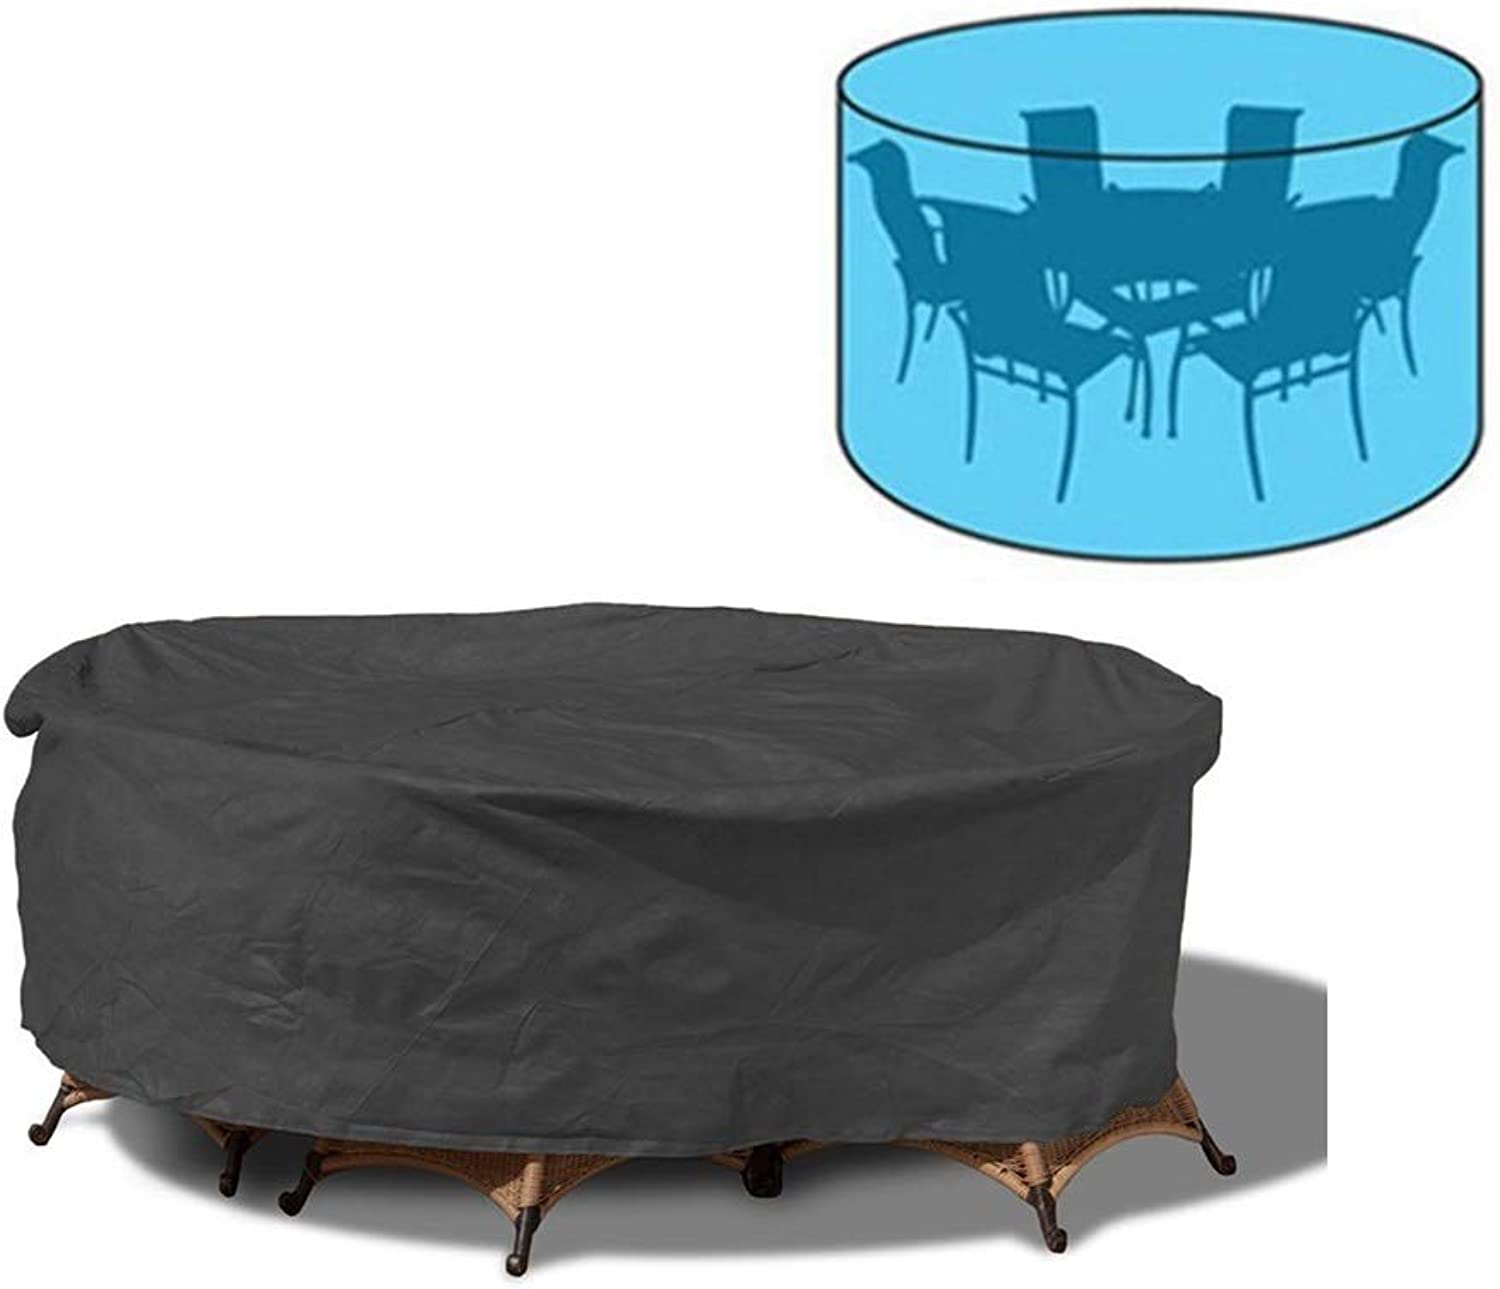 Large Round Patio Table & Chair Set Cover, Heavy Duty Durable Waterproof, Black (Size   230  110CM)